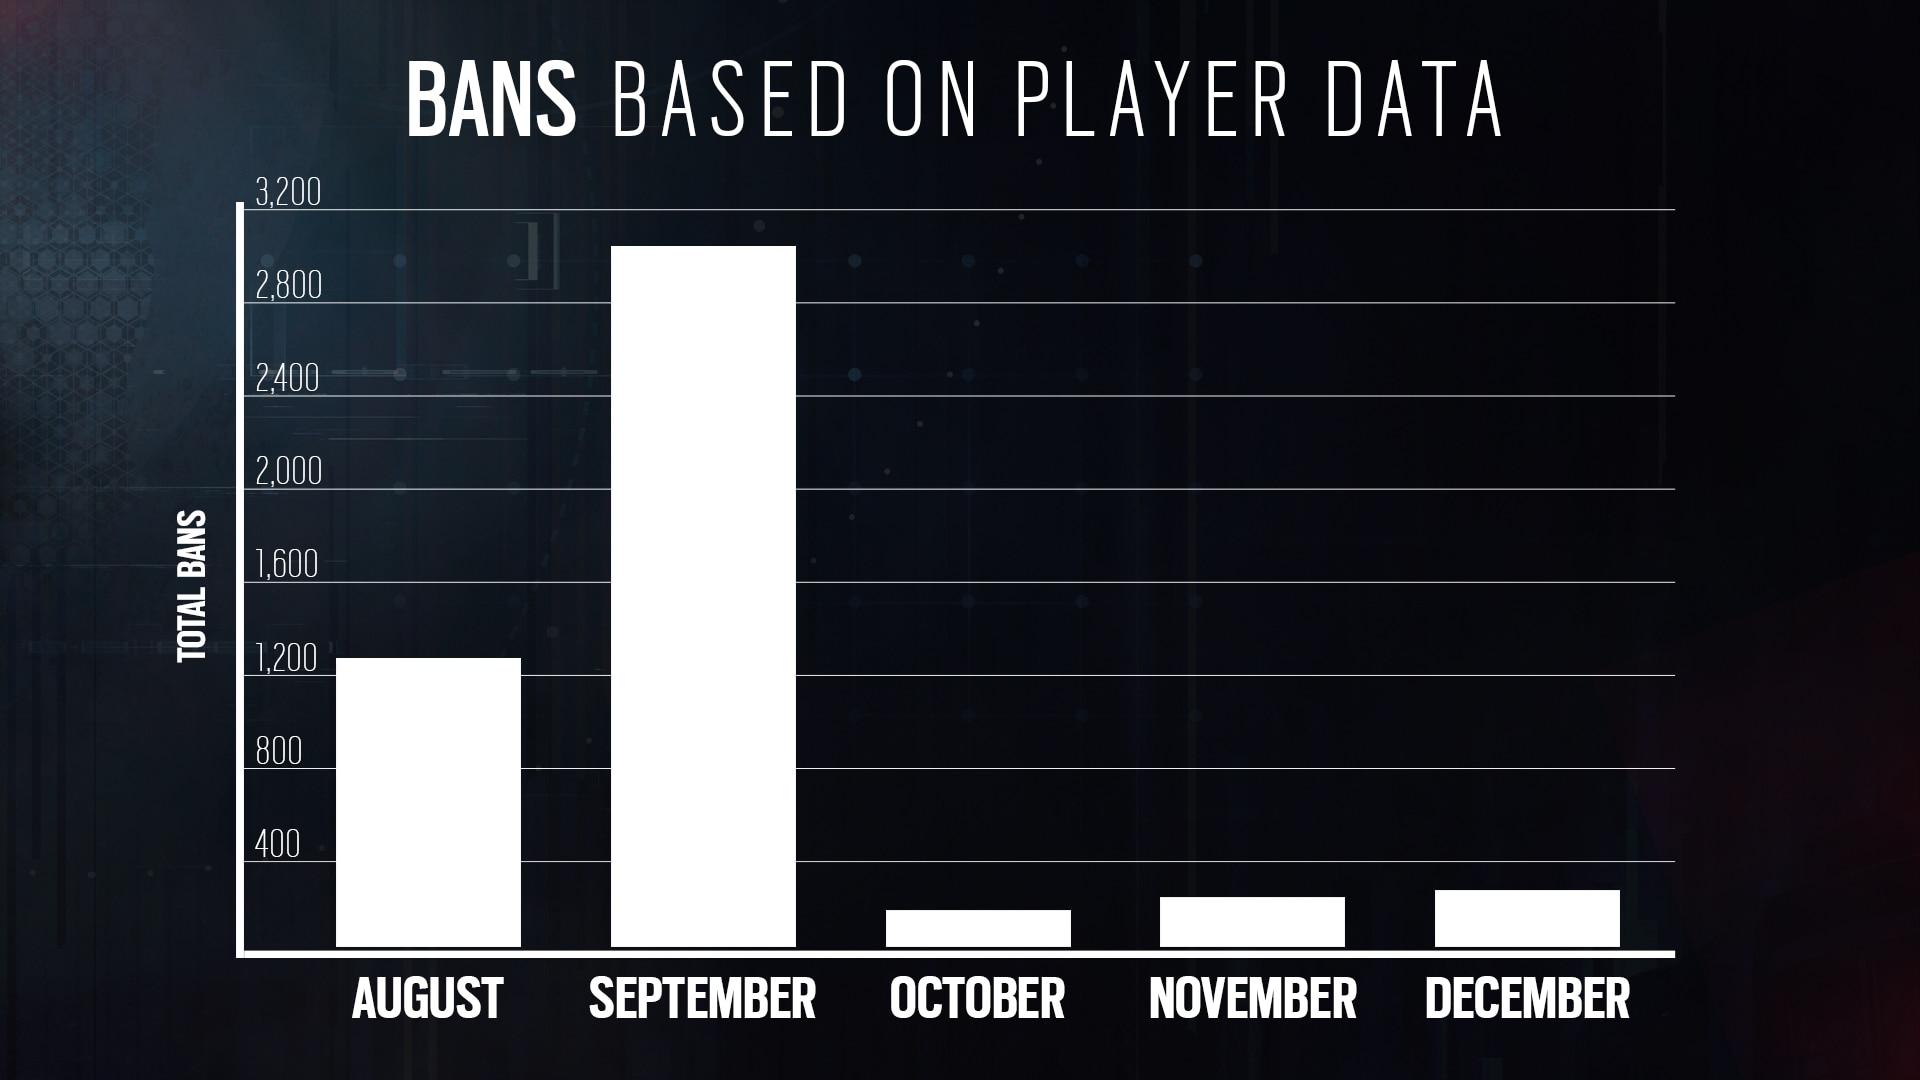 [R6] Bans Graph Updated